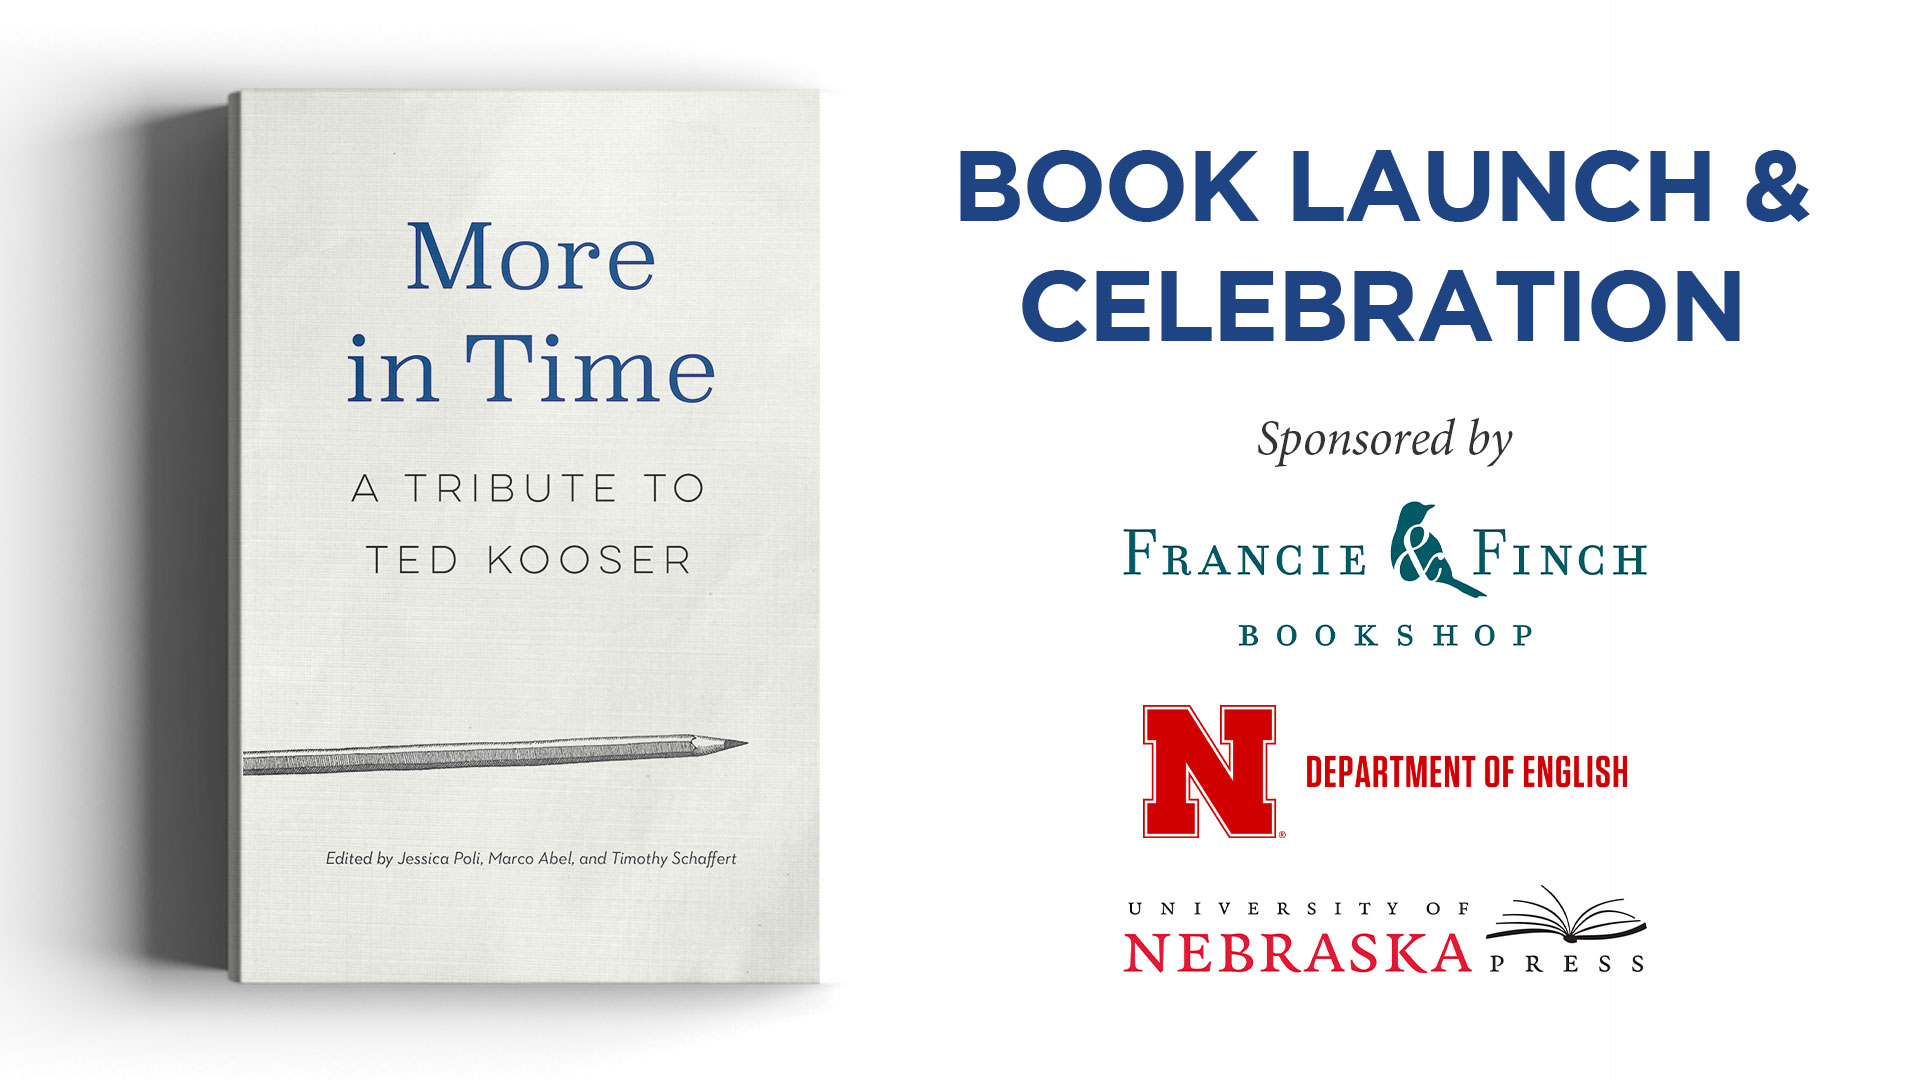 More in Time: A Tribute to Ted Kooser - book launch & celebration